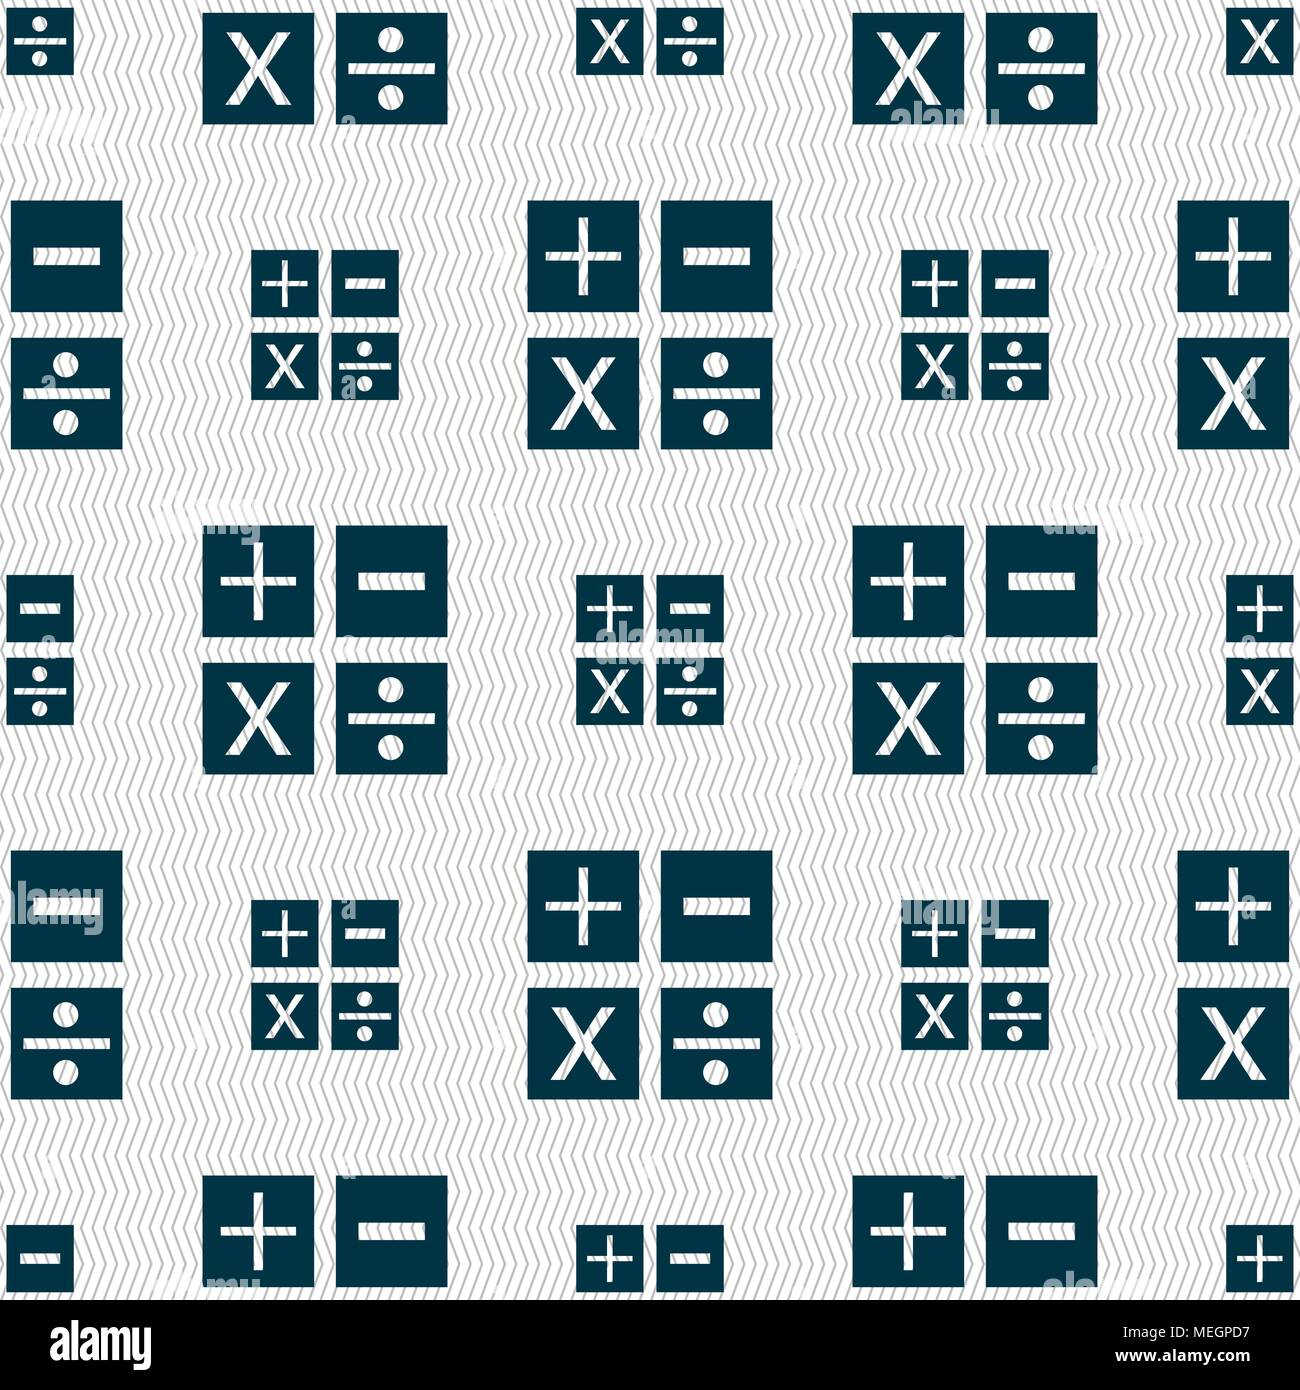 Multiplication Stock Vector Images - Alamy